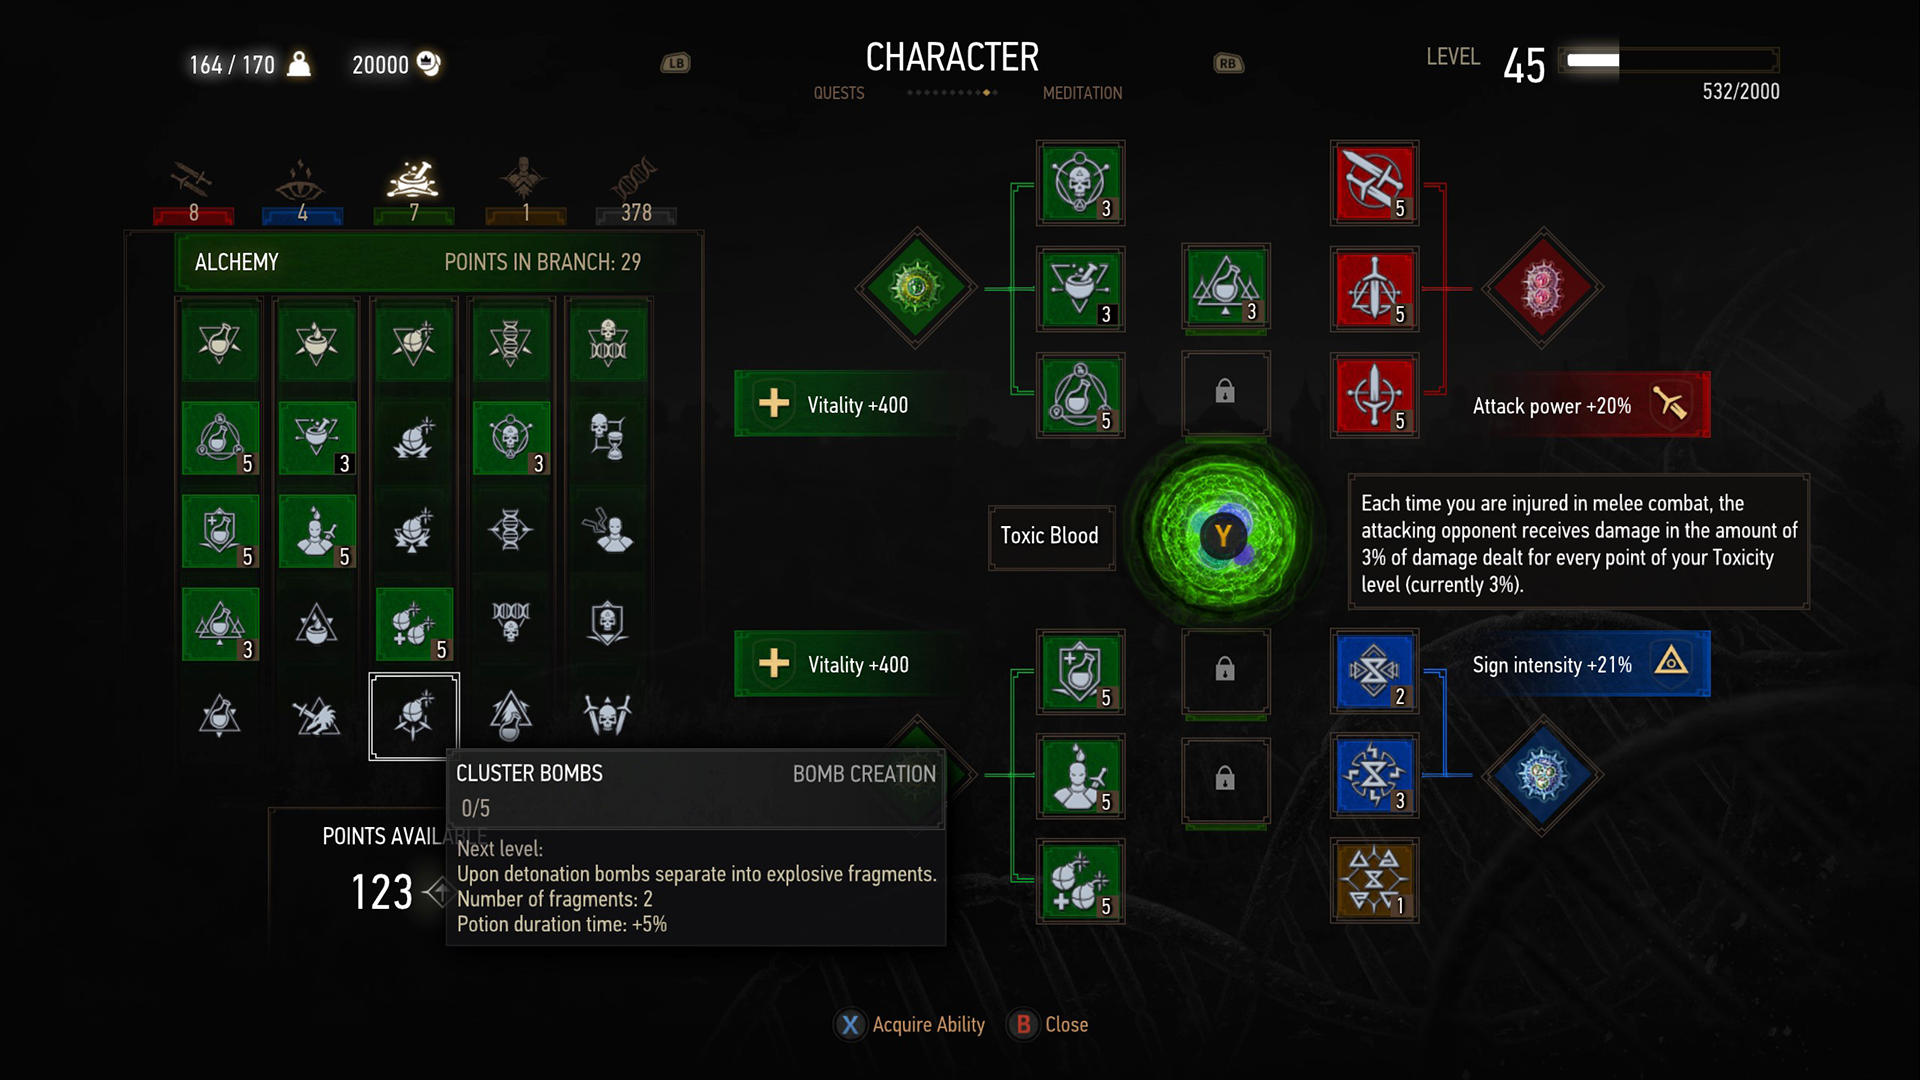 01 Tzonlu6 Png 1920 1080 The Witcher 3 The Witcher Character Building